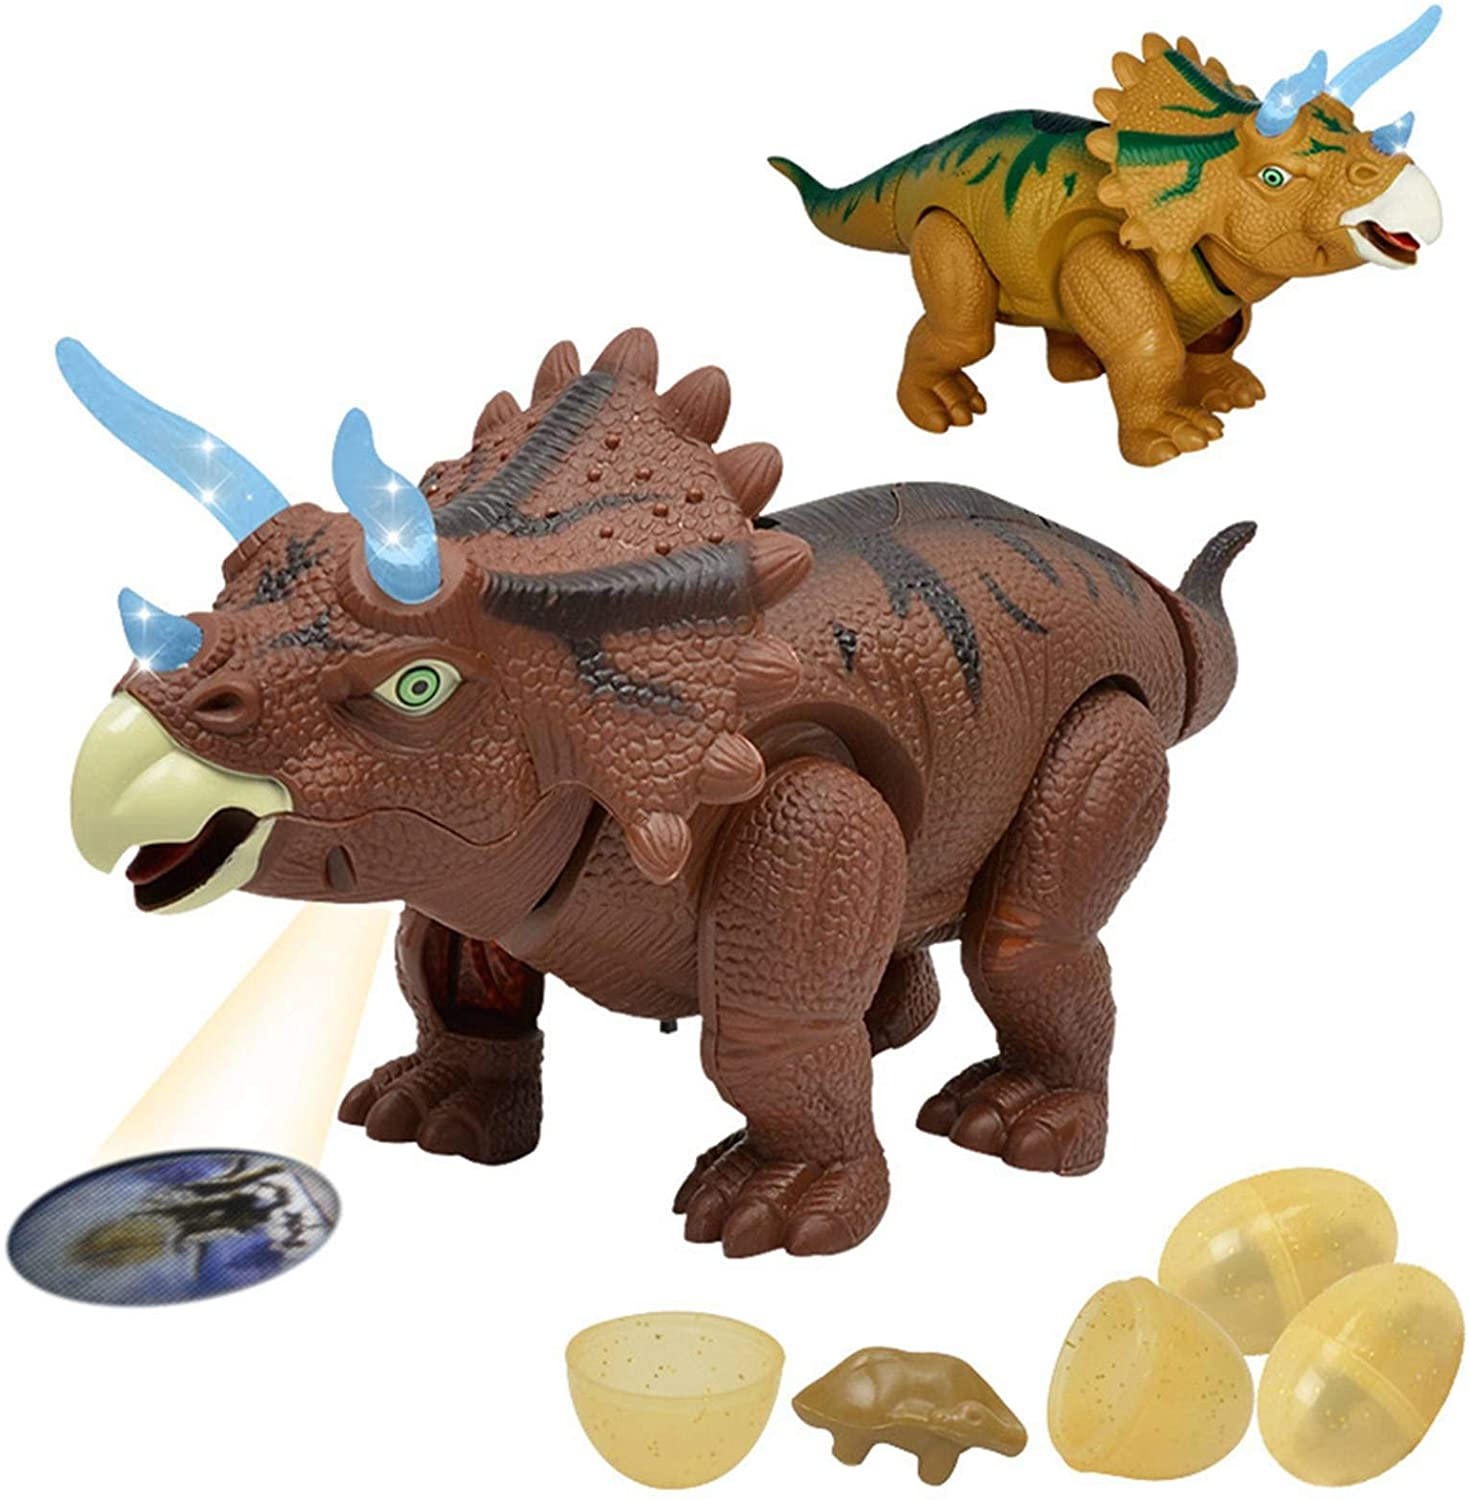 VASTAIR Electronic Walking Dinosaur Lay Eggs Electric Walk Dino Laying Eggs T-Rex Toy LED Light Up Walking Realistic Dinosaur Projection Lights Gift Ideas for Kids Boys Girls(#2)